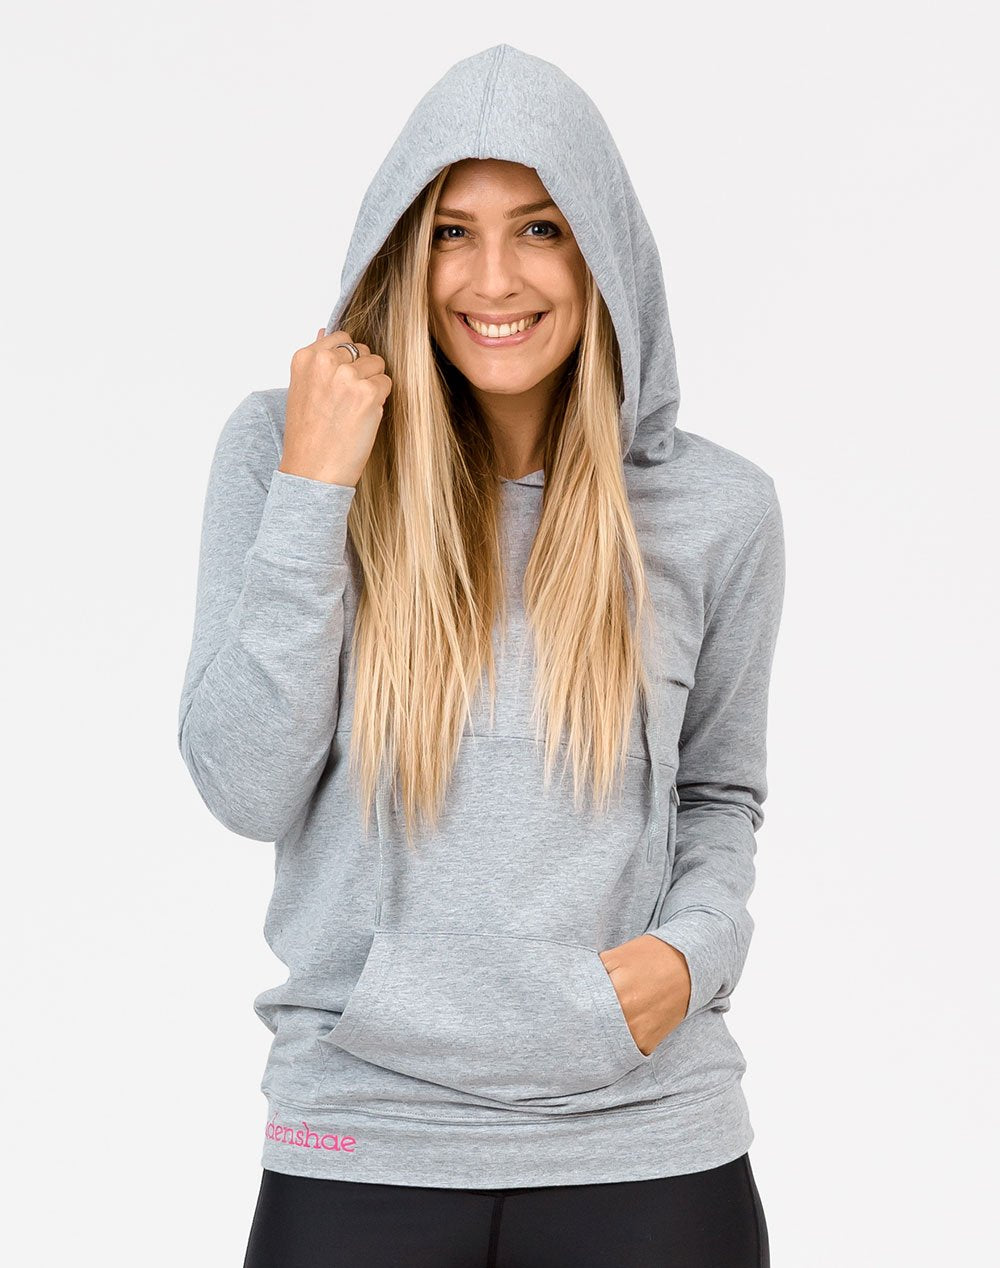 front view active mom wearing a gray casual breastfeeding hoodie with the hood up